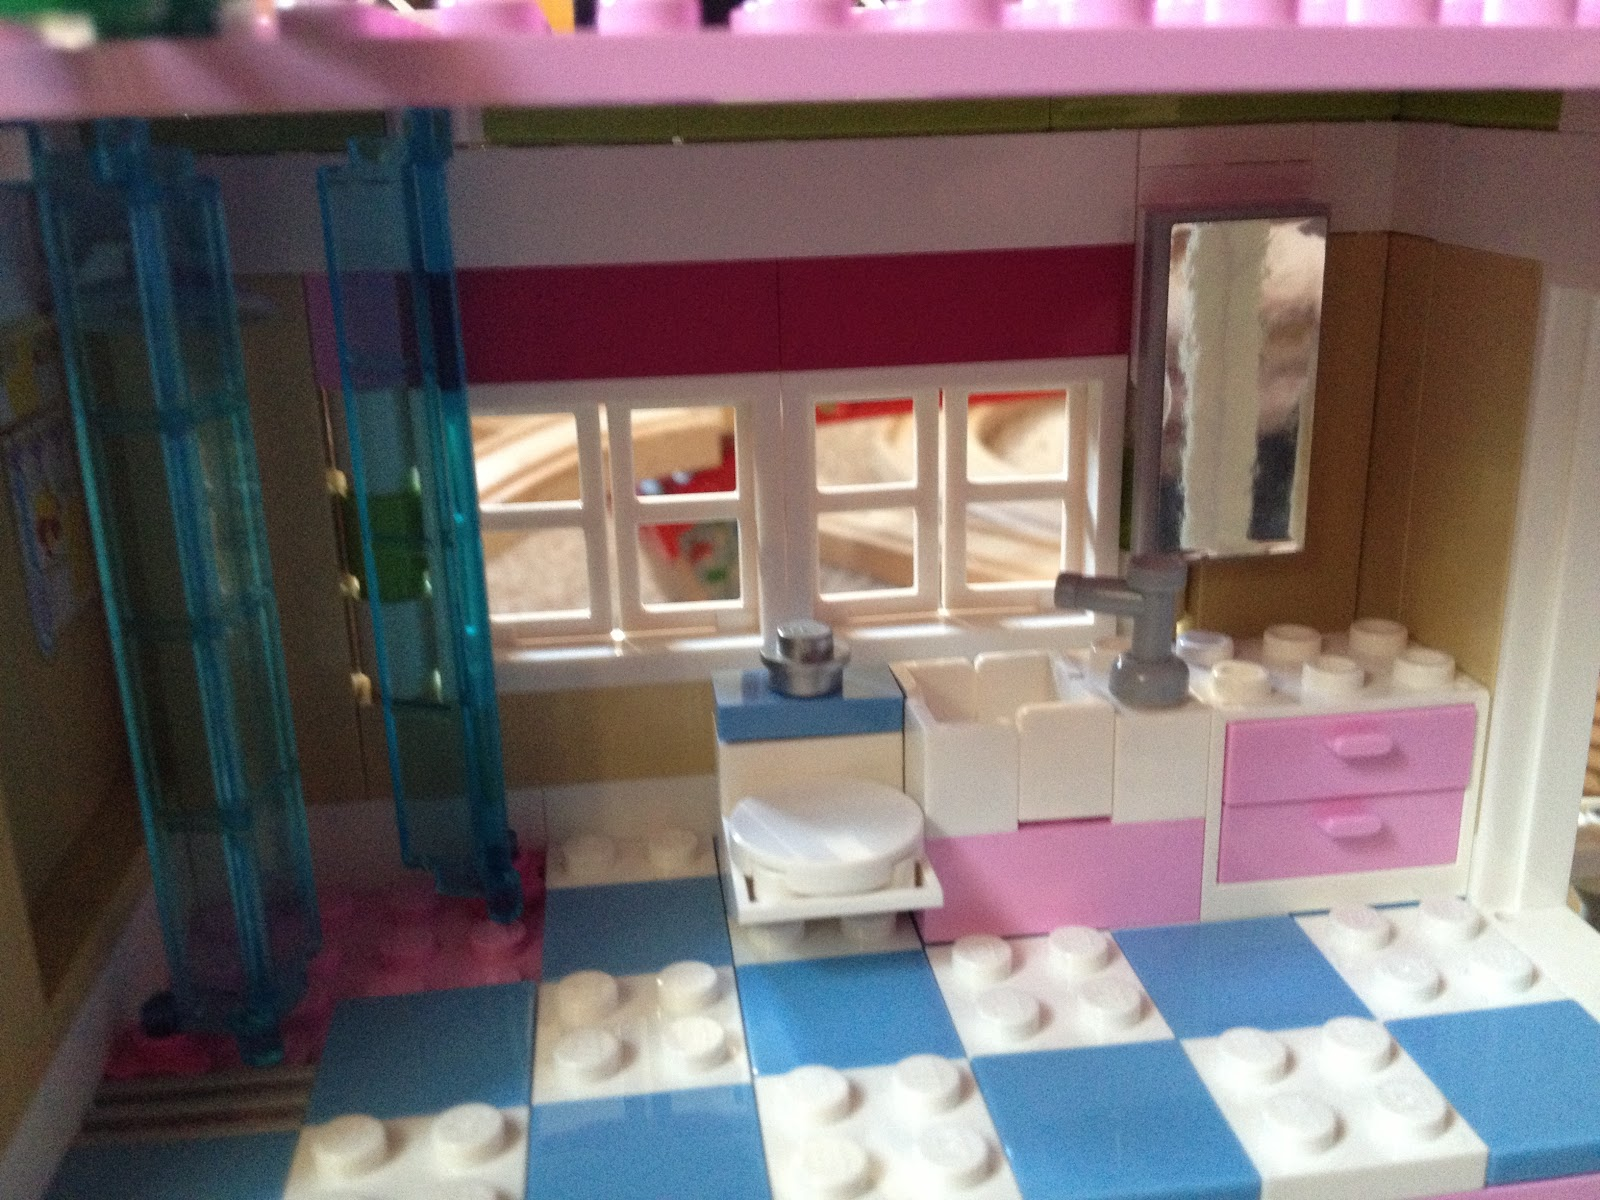 According To Mags Lego Girls Have All The Luck